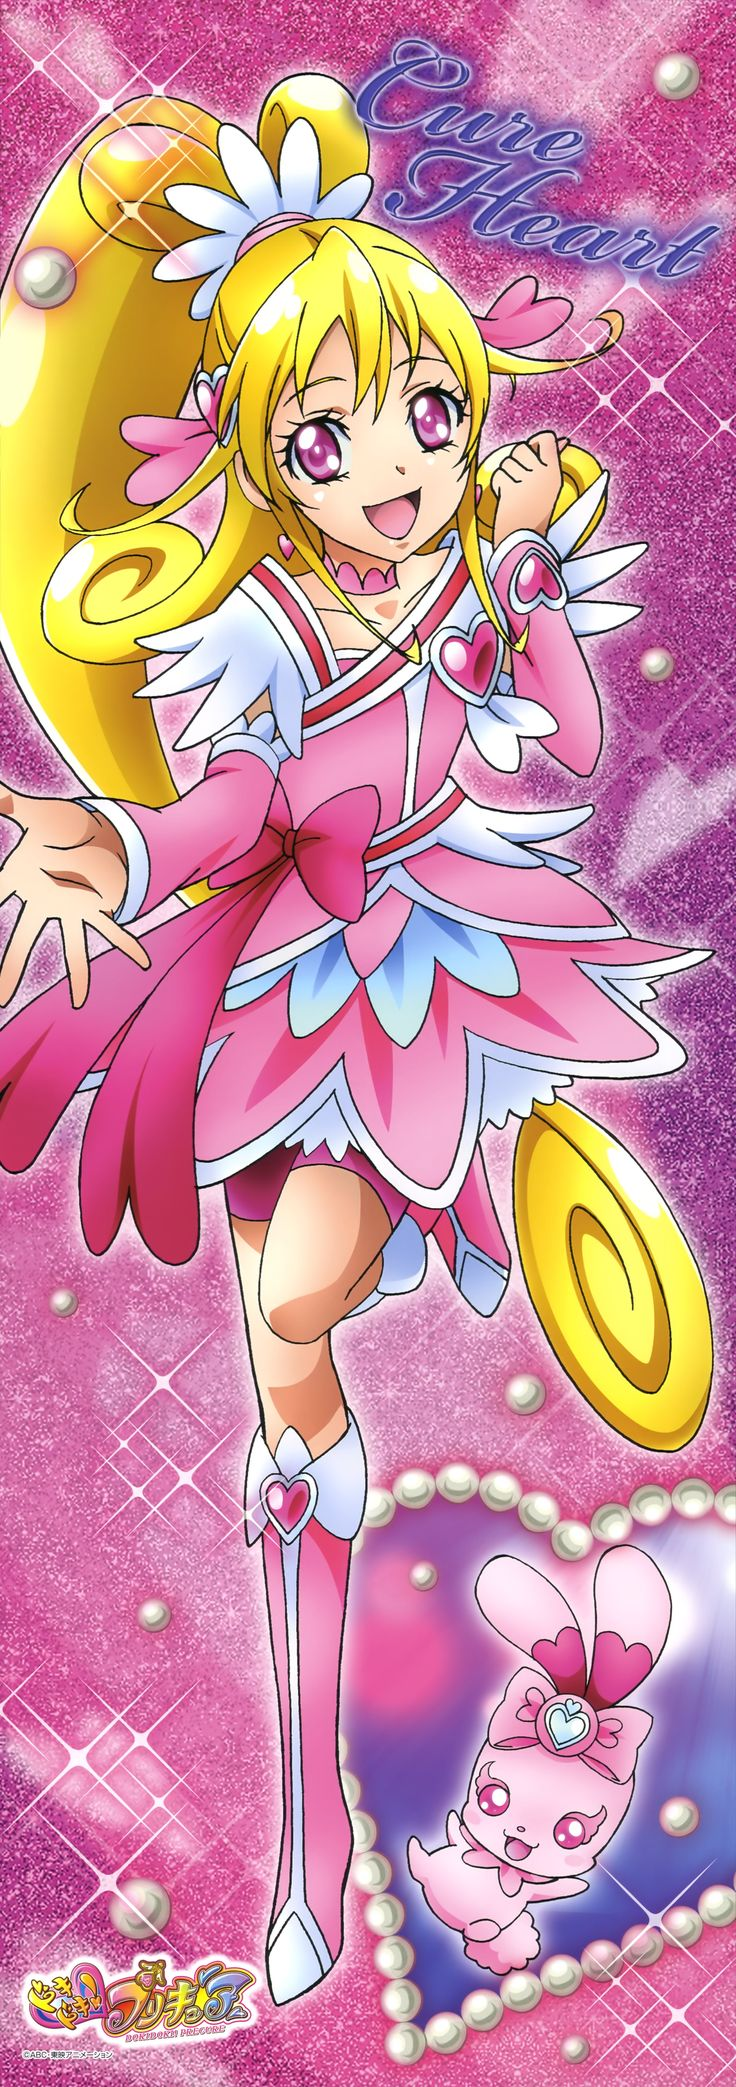 Pinterest in 2020 Glitter force, Pretty cure, Smile